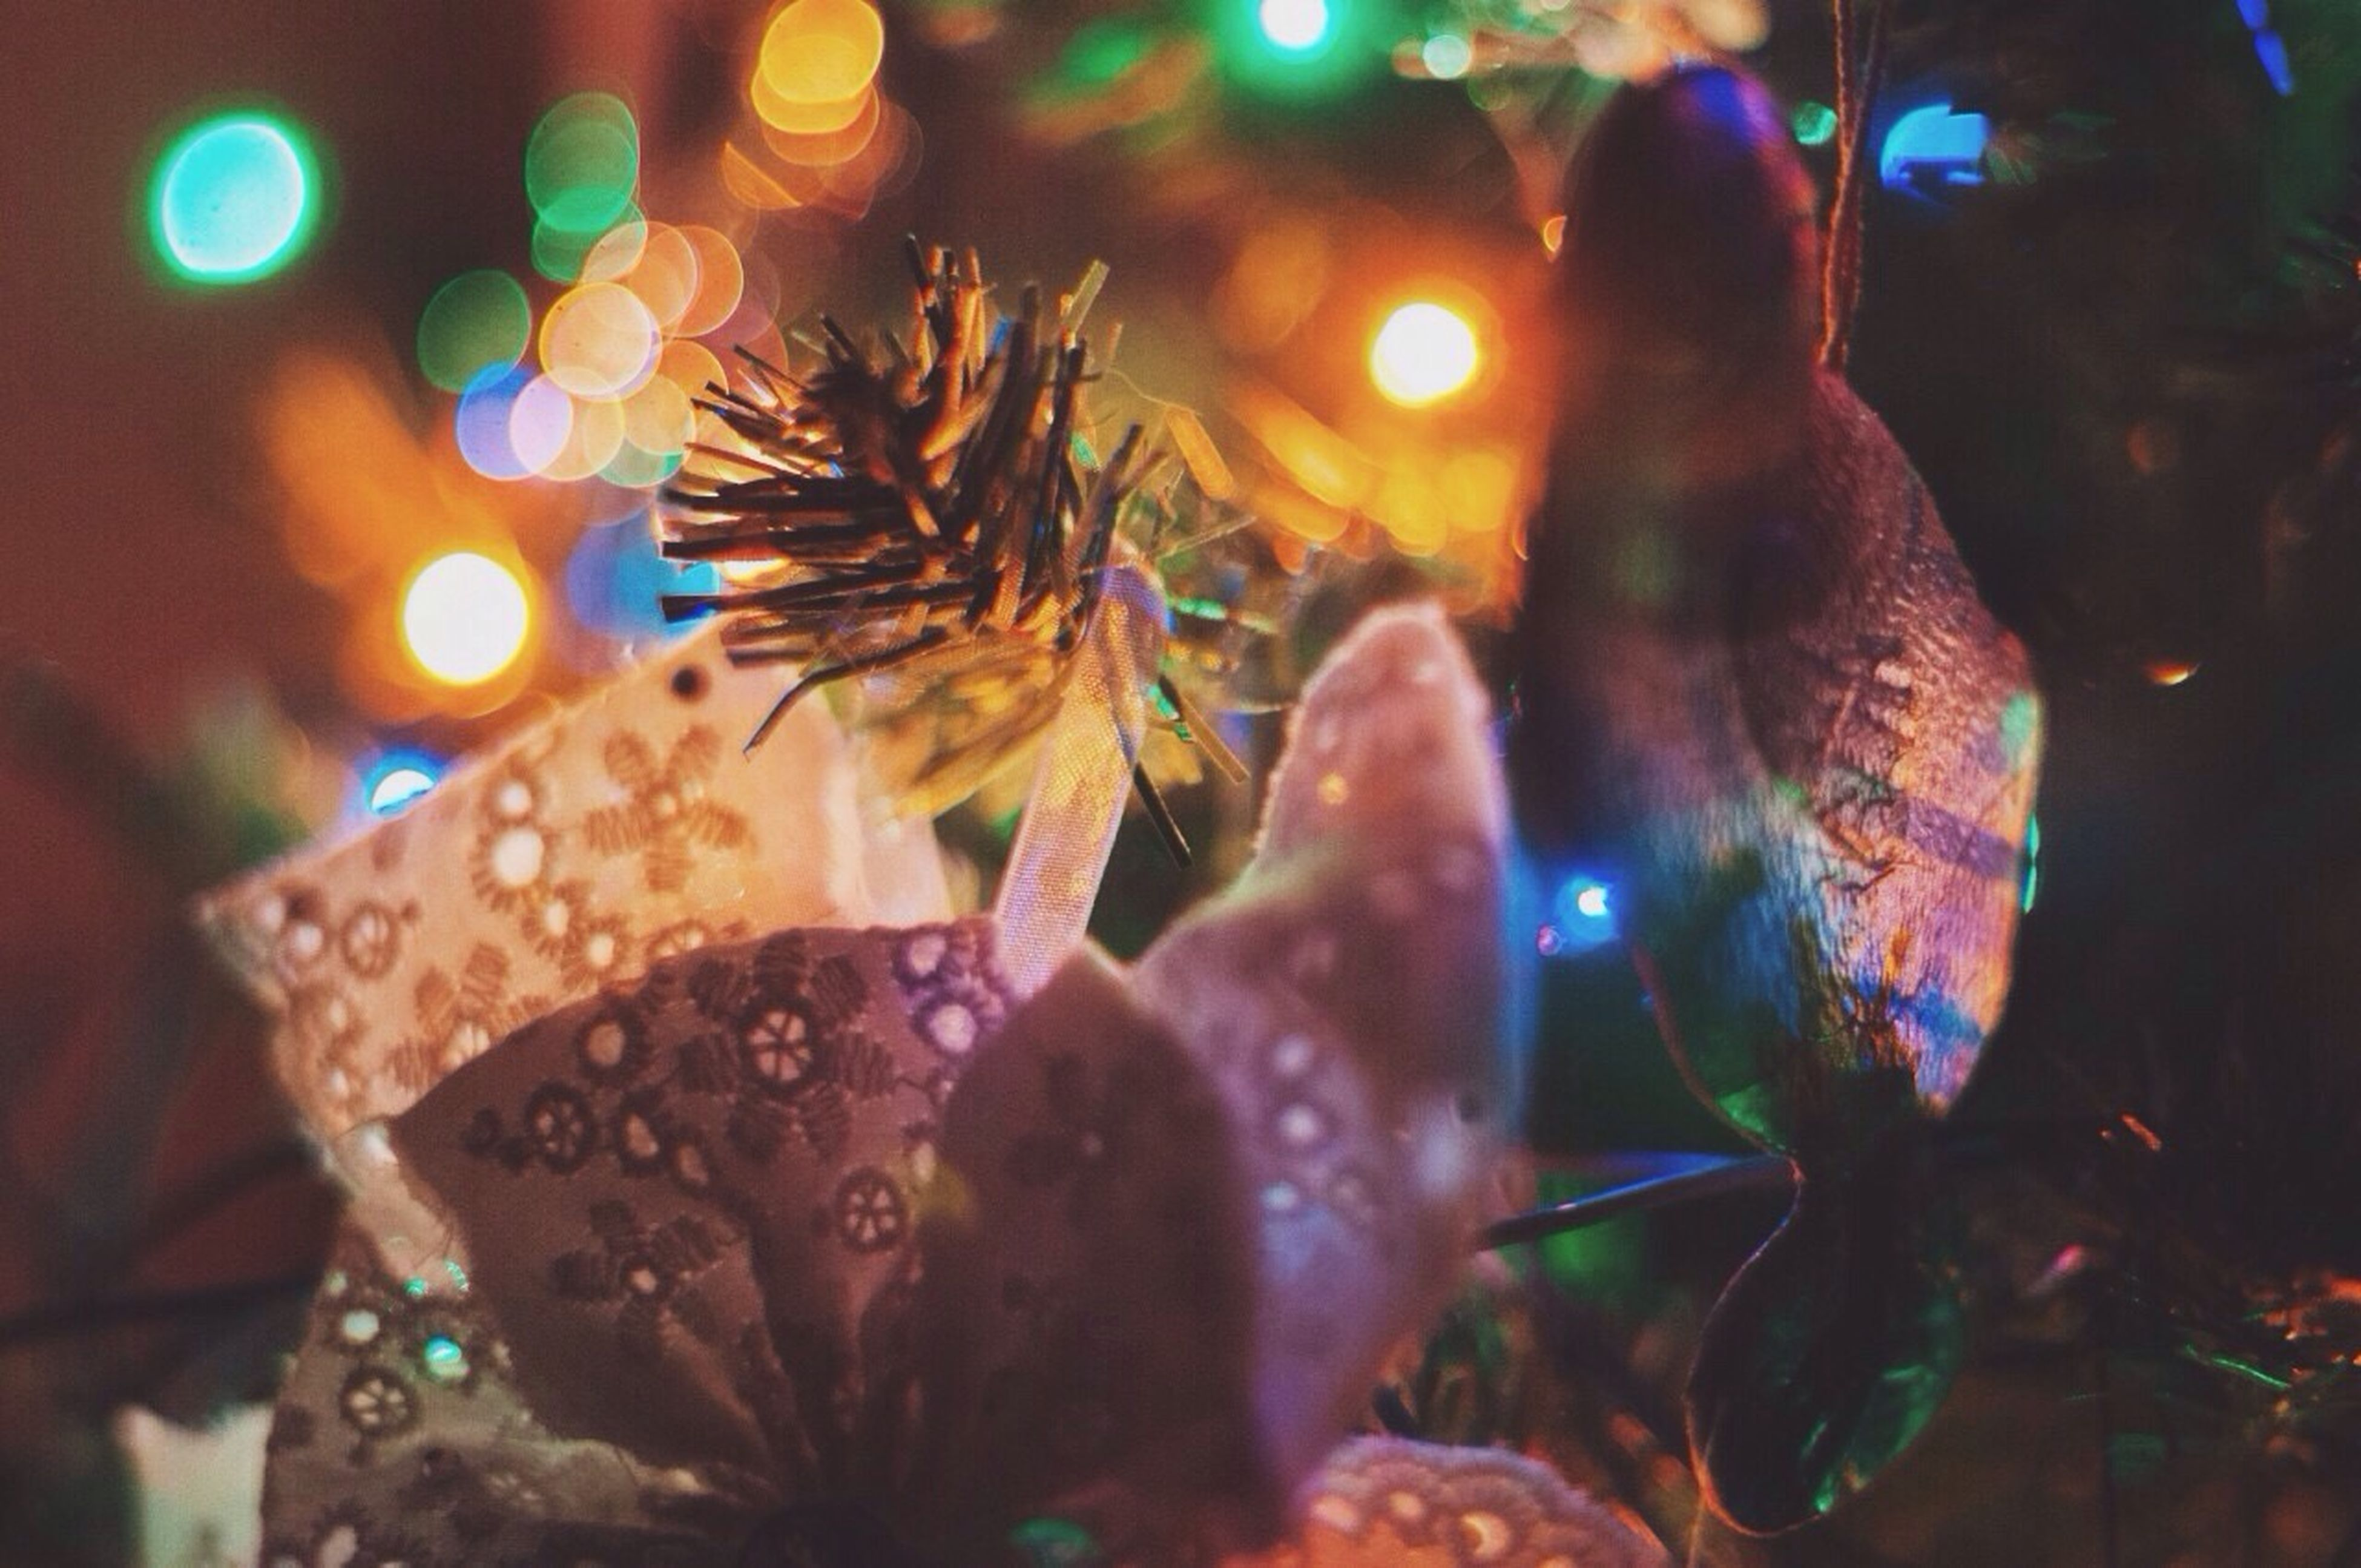 celebration, night, christmas, cultures, illuminated, tradition, christmas tree, close-up, arts culture and entertainment, christmas decoration, christmas lights, christmas ornament, celebration event, party - social event, indoors, nightlife, event, carnival, christmas market, no people